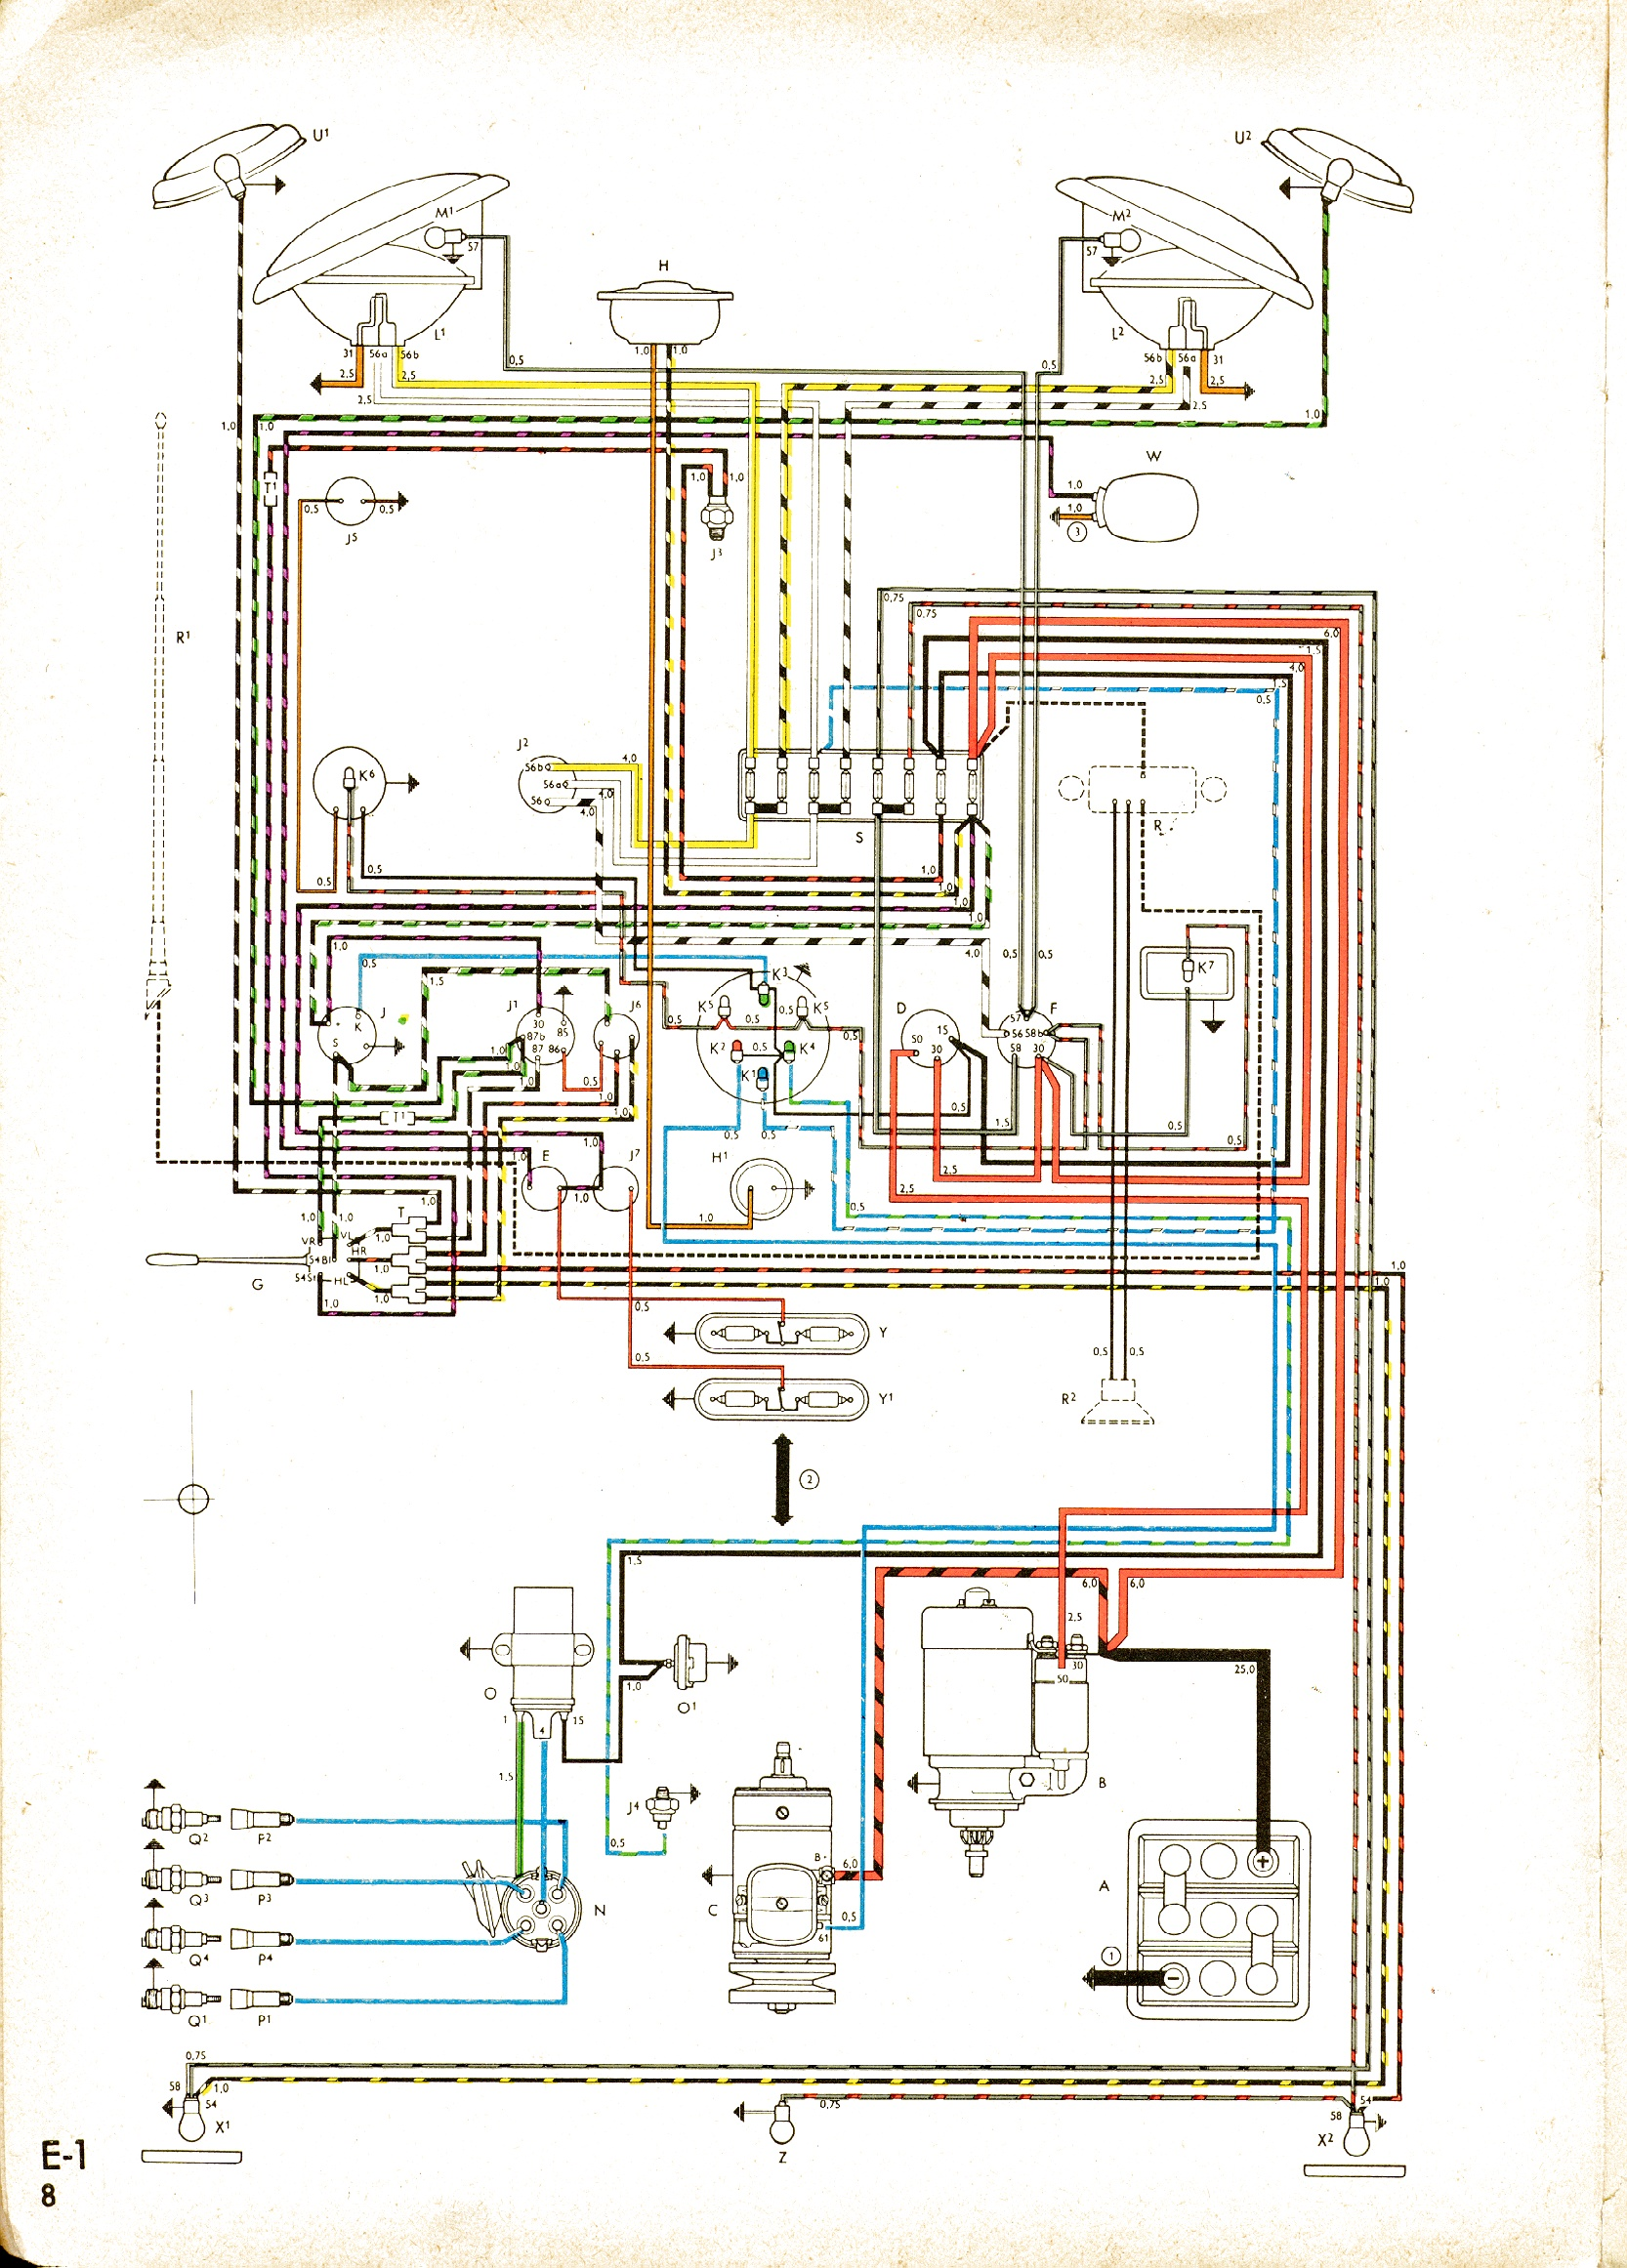 Vw Engine Wiring Diagram Schemes Transporter T4 1500 Detailed Schematics Rh Antonartgallery Com 1600